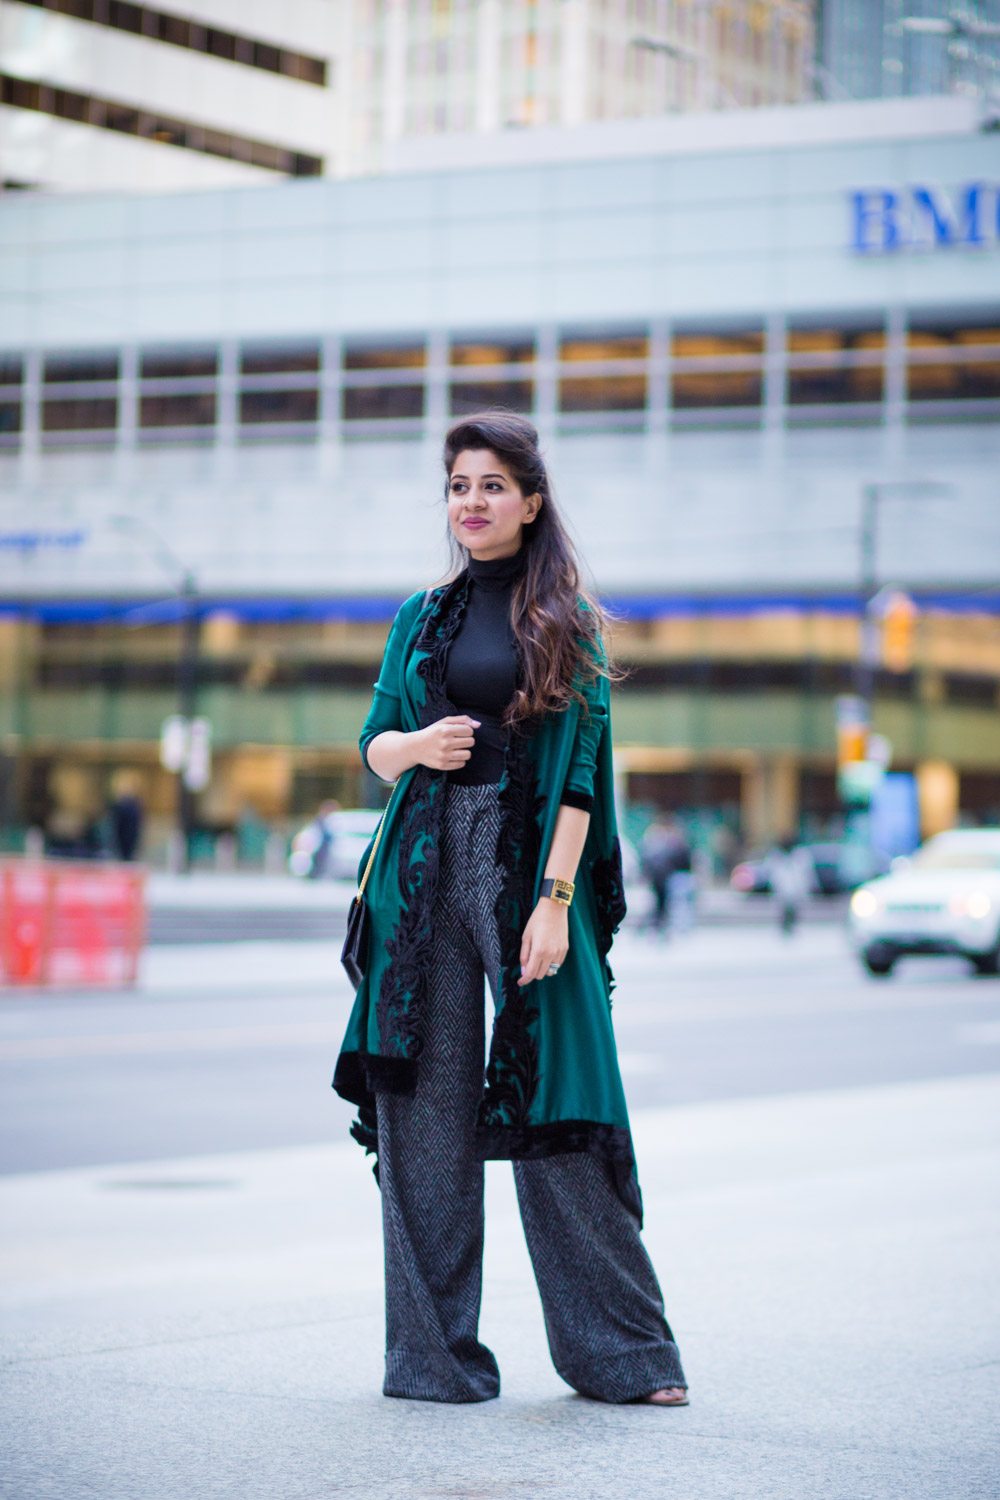 green-cape-allena-fareena-pakistani-fusion-eastern-western-wide-leg-pants-zara-ysl-black-1